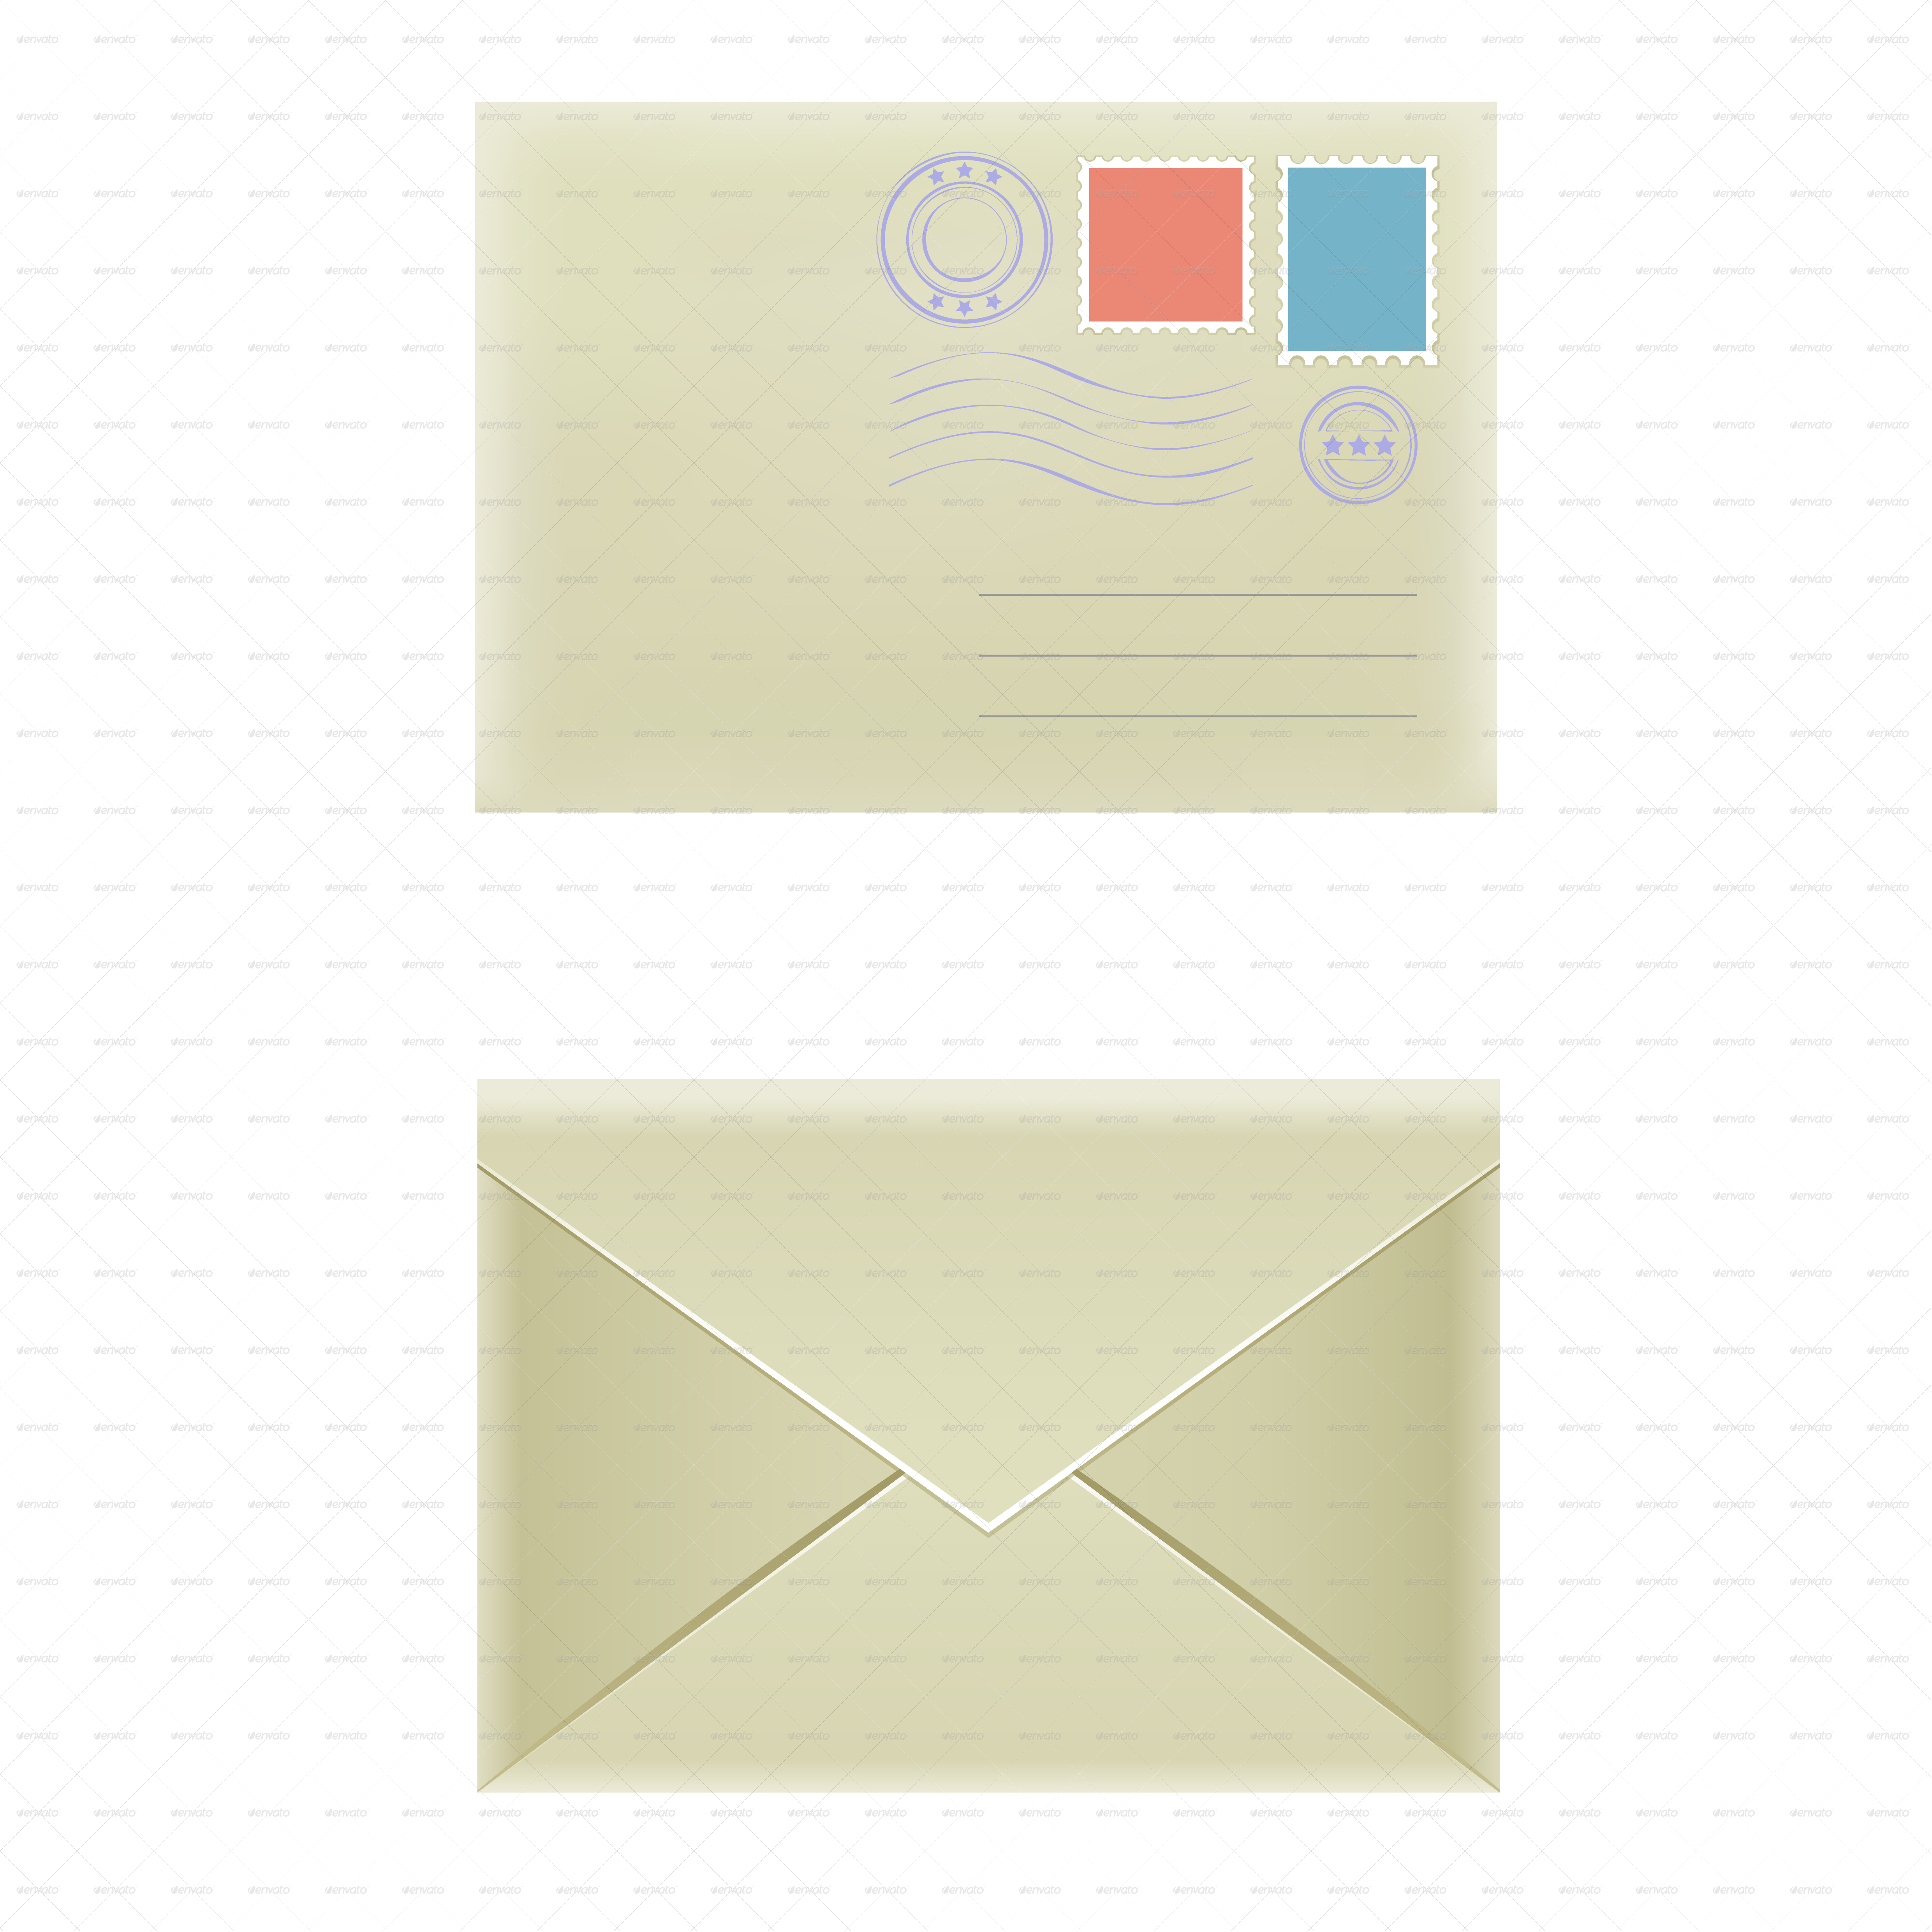 Envelope clipart rectangle object. By romvo graphicriver